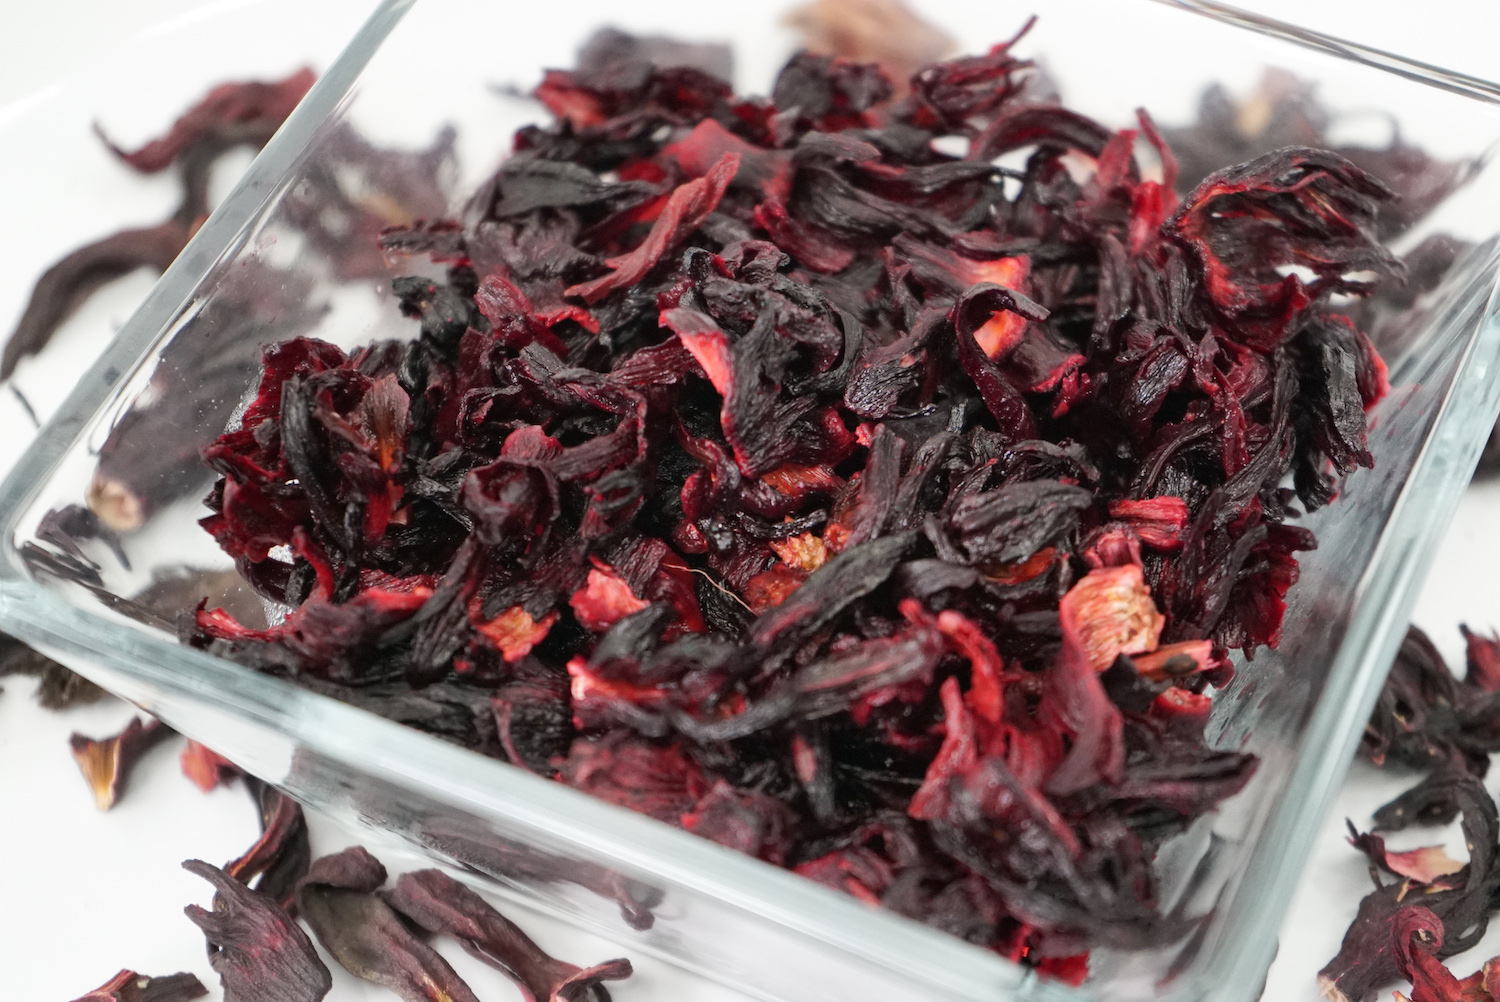 Sorrel is made from brewing the flower petals of the roselle plant, a type of hibiscus that is native to India. The plant way brought to Africa and then to the New World. The drink is made by boiling the dried petals, above.